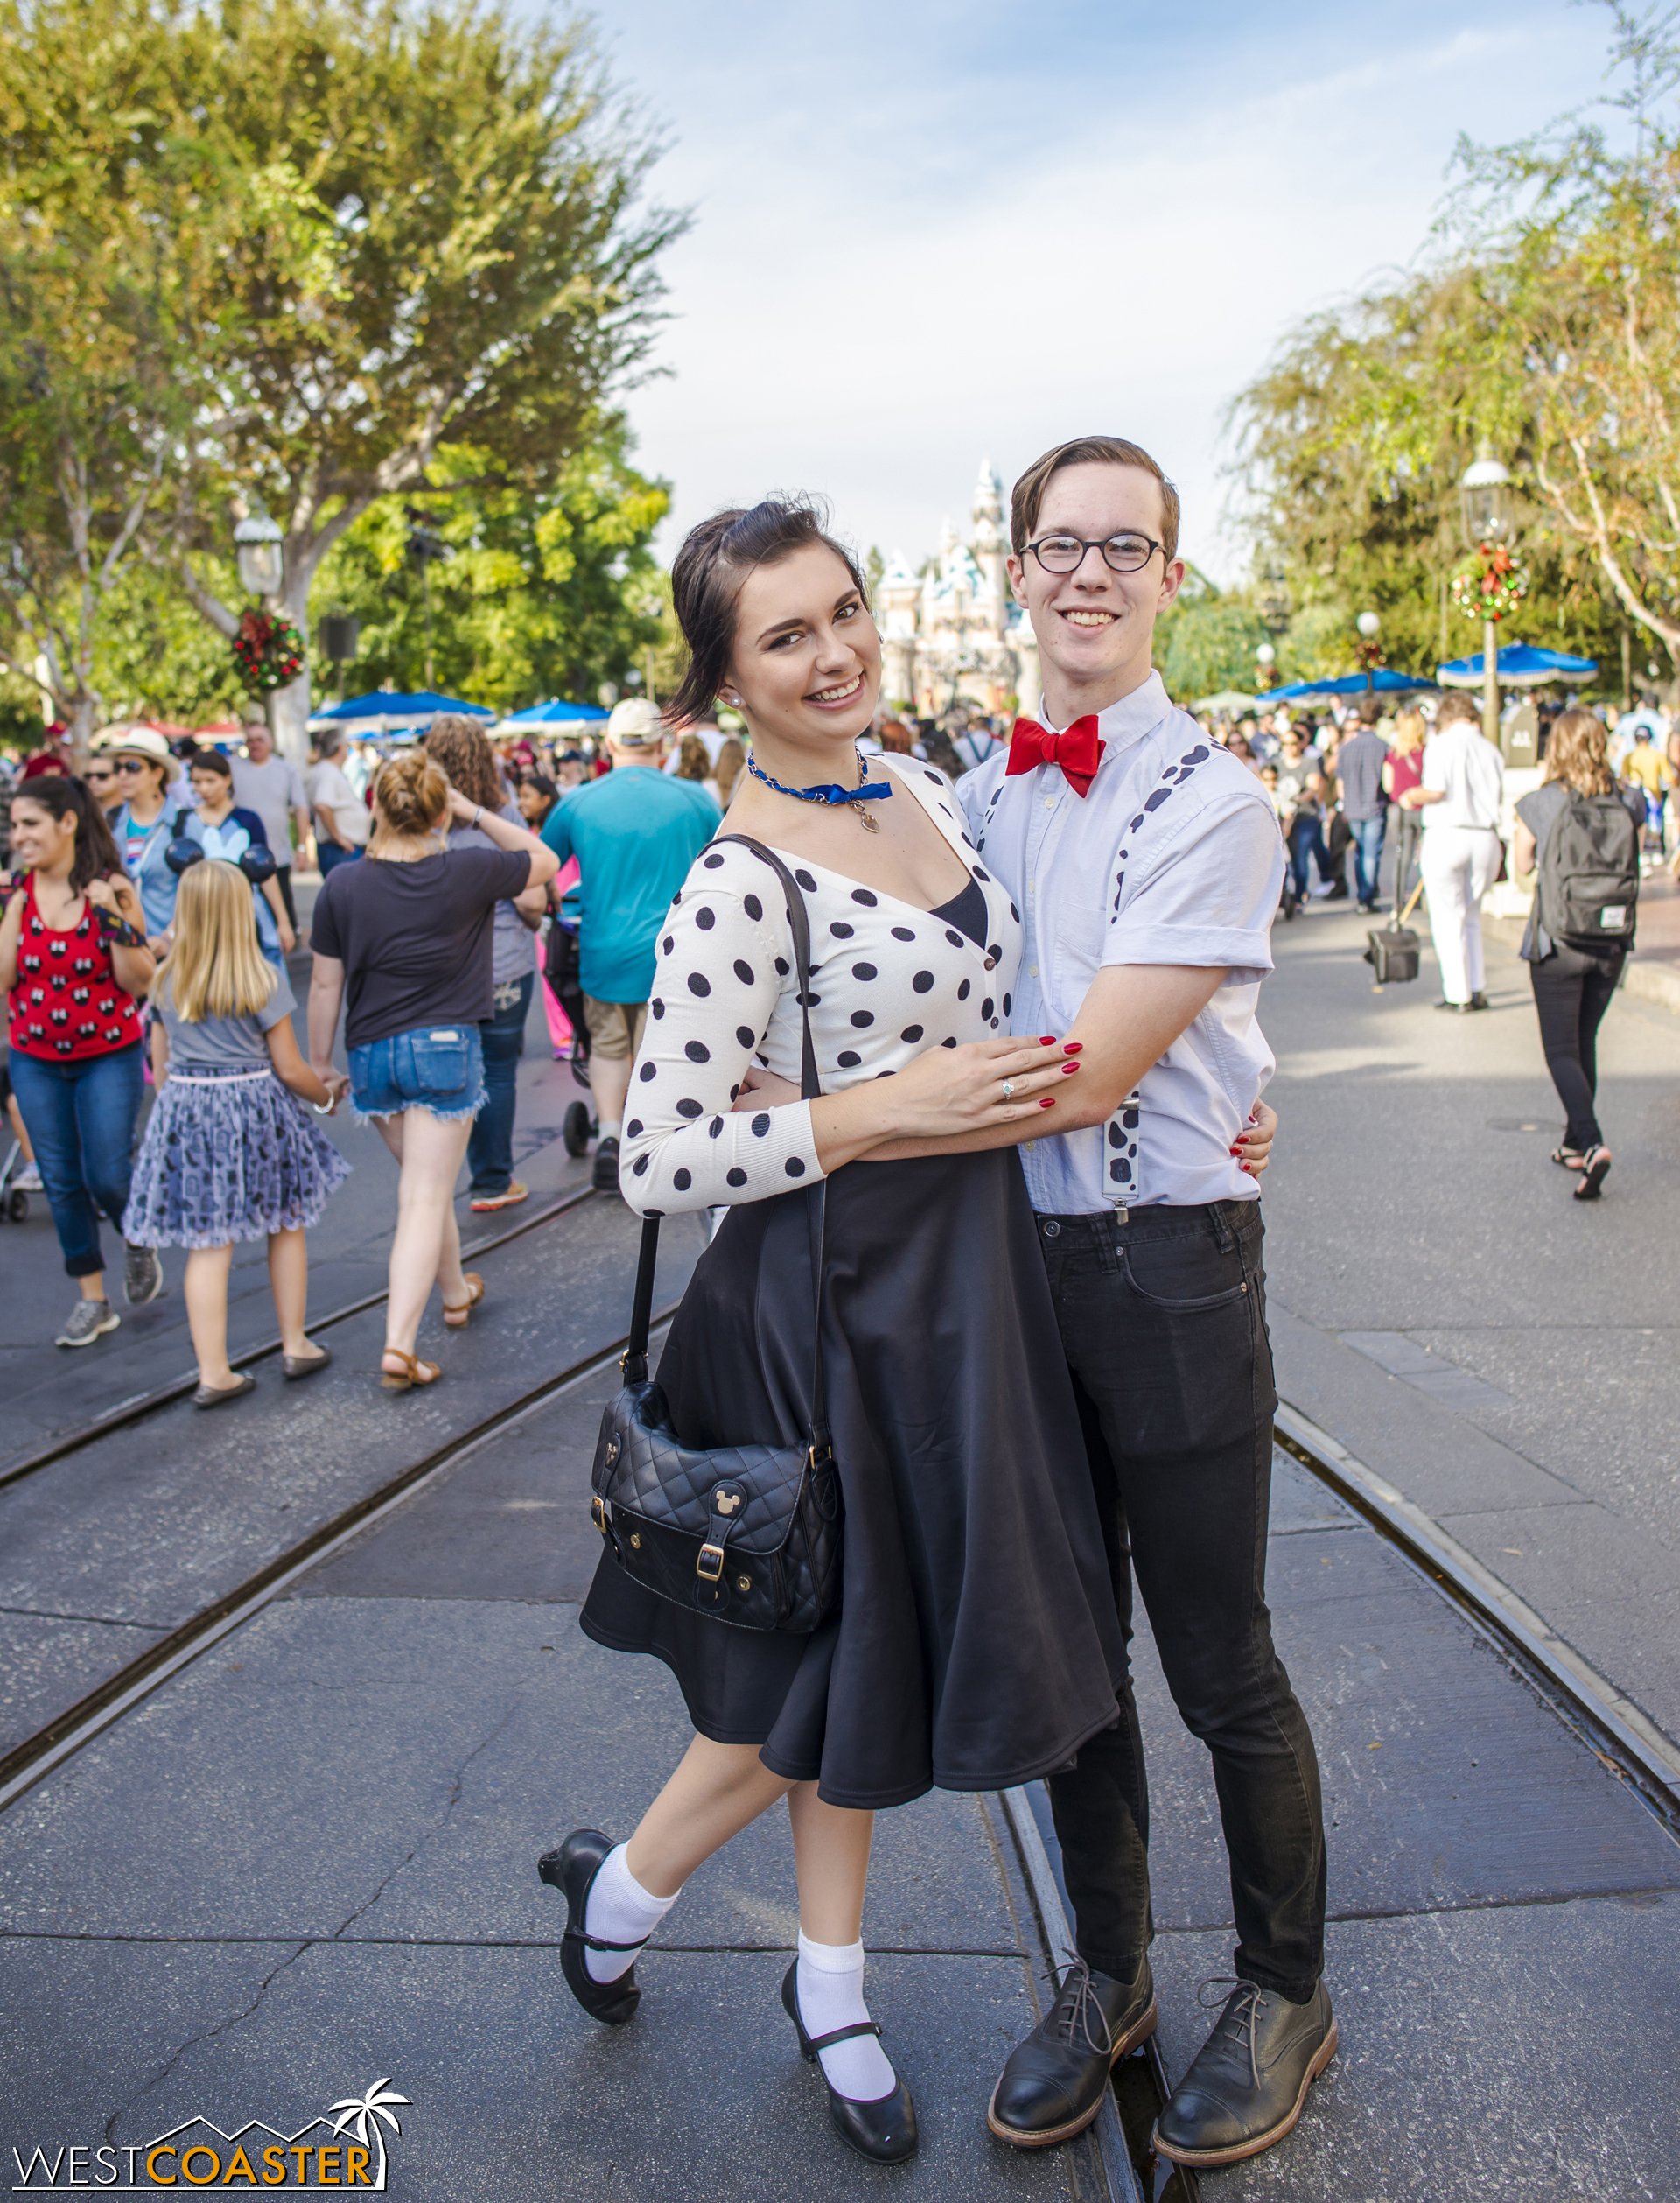 As you can see, Dapper Day is quite an eventful day indeed!